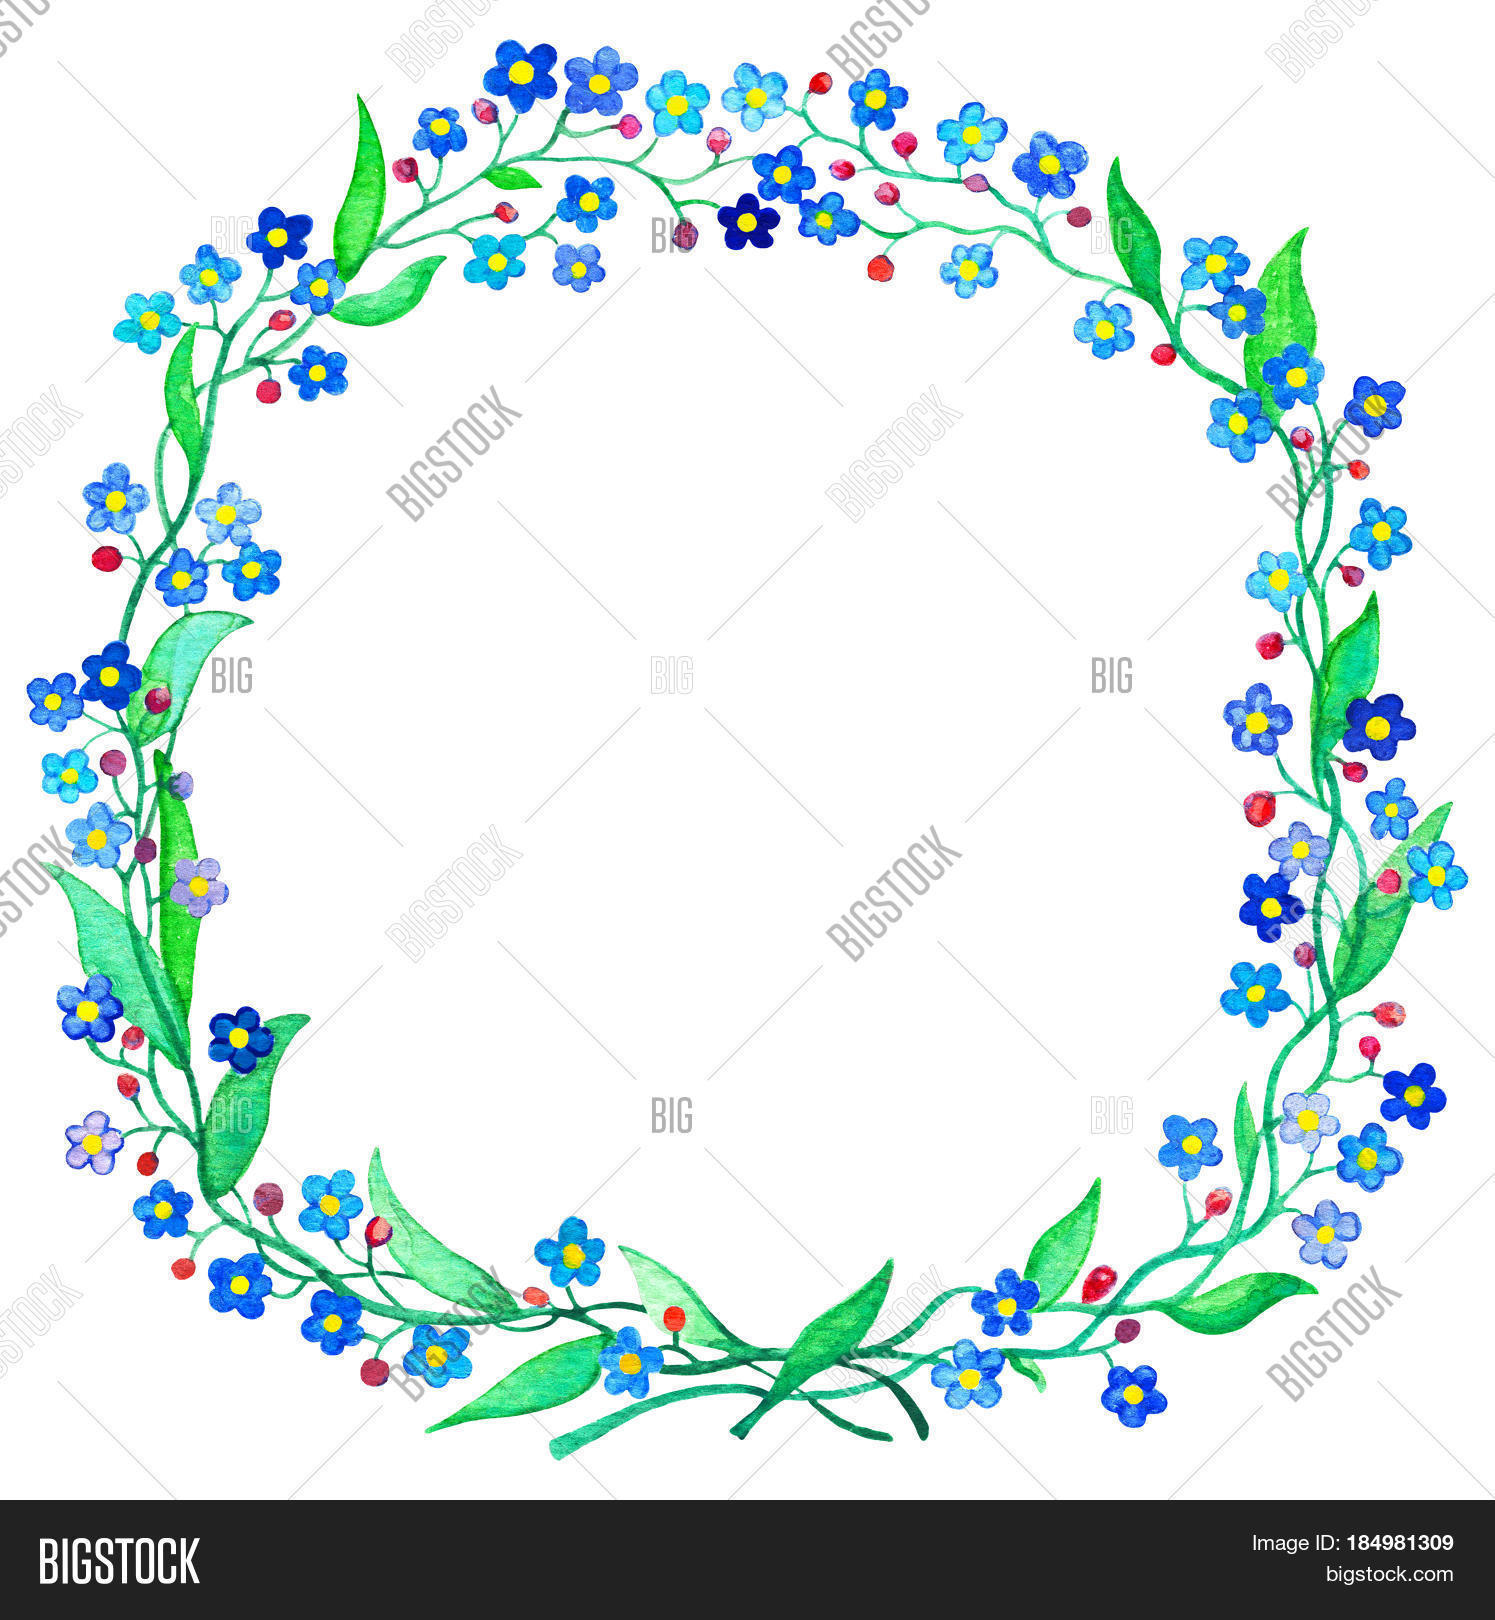 Blue forget me not wreath image photo bigstock blue forget me not wreath watercolor illustration spring flower forgetmenot on white background izmirmasajfo Gallery